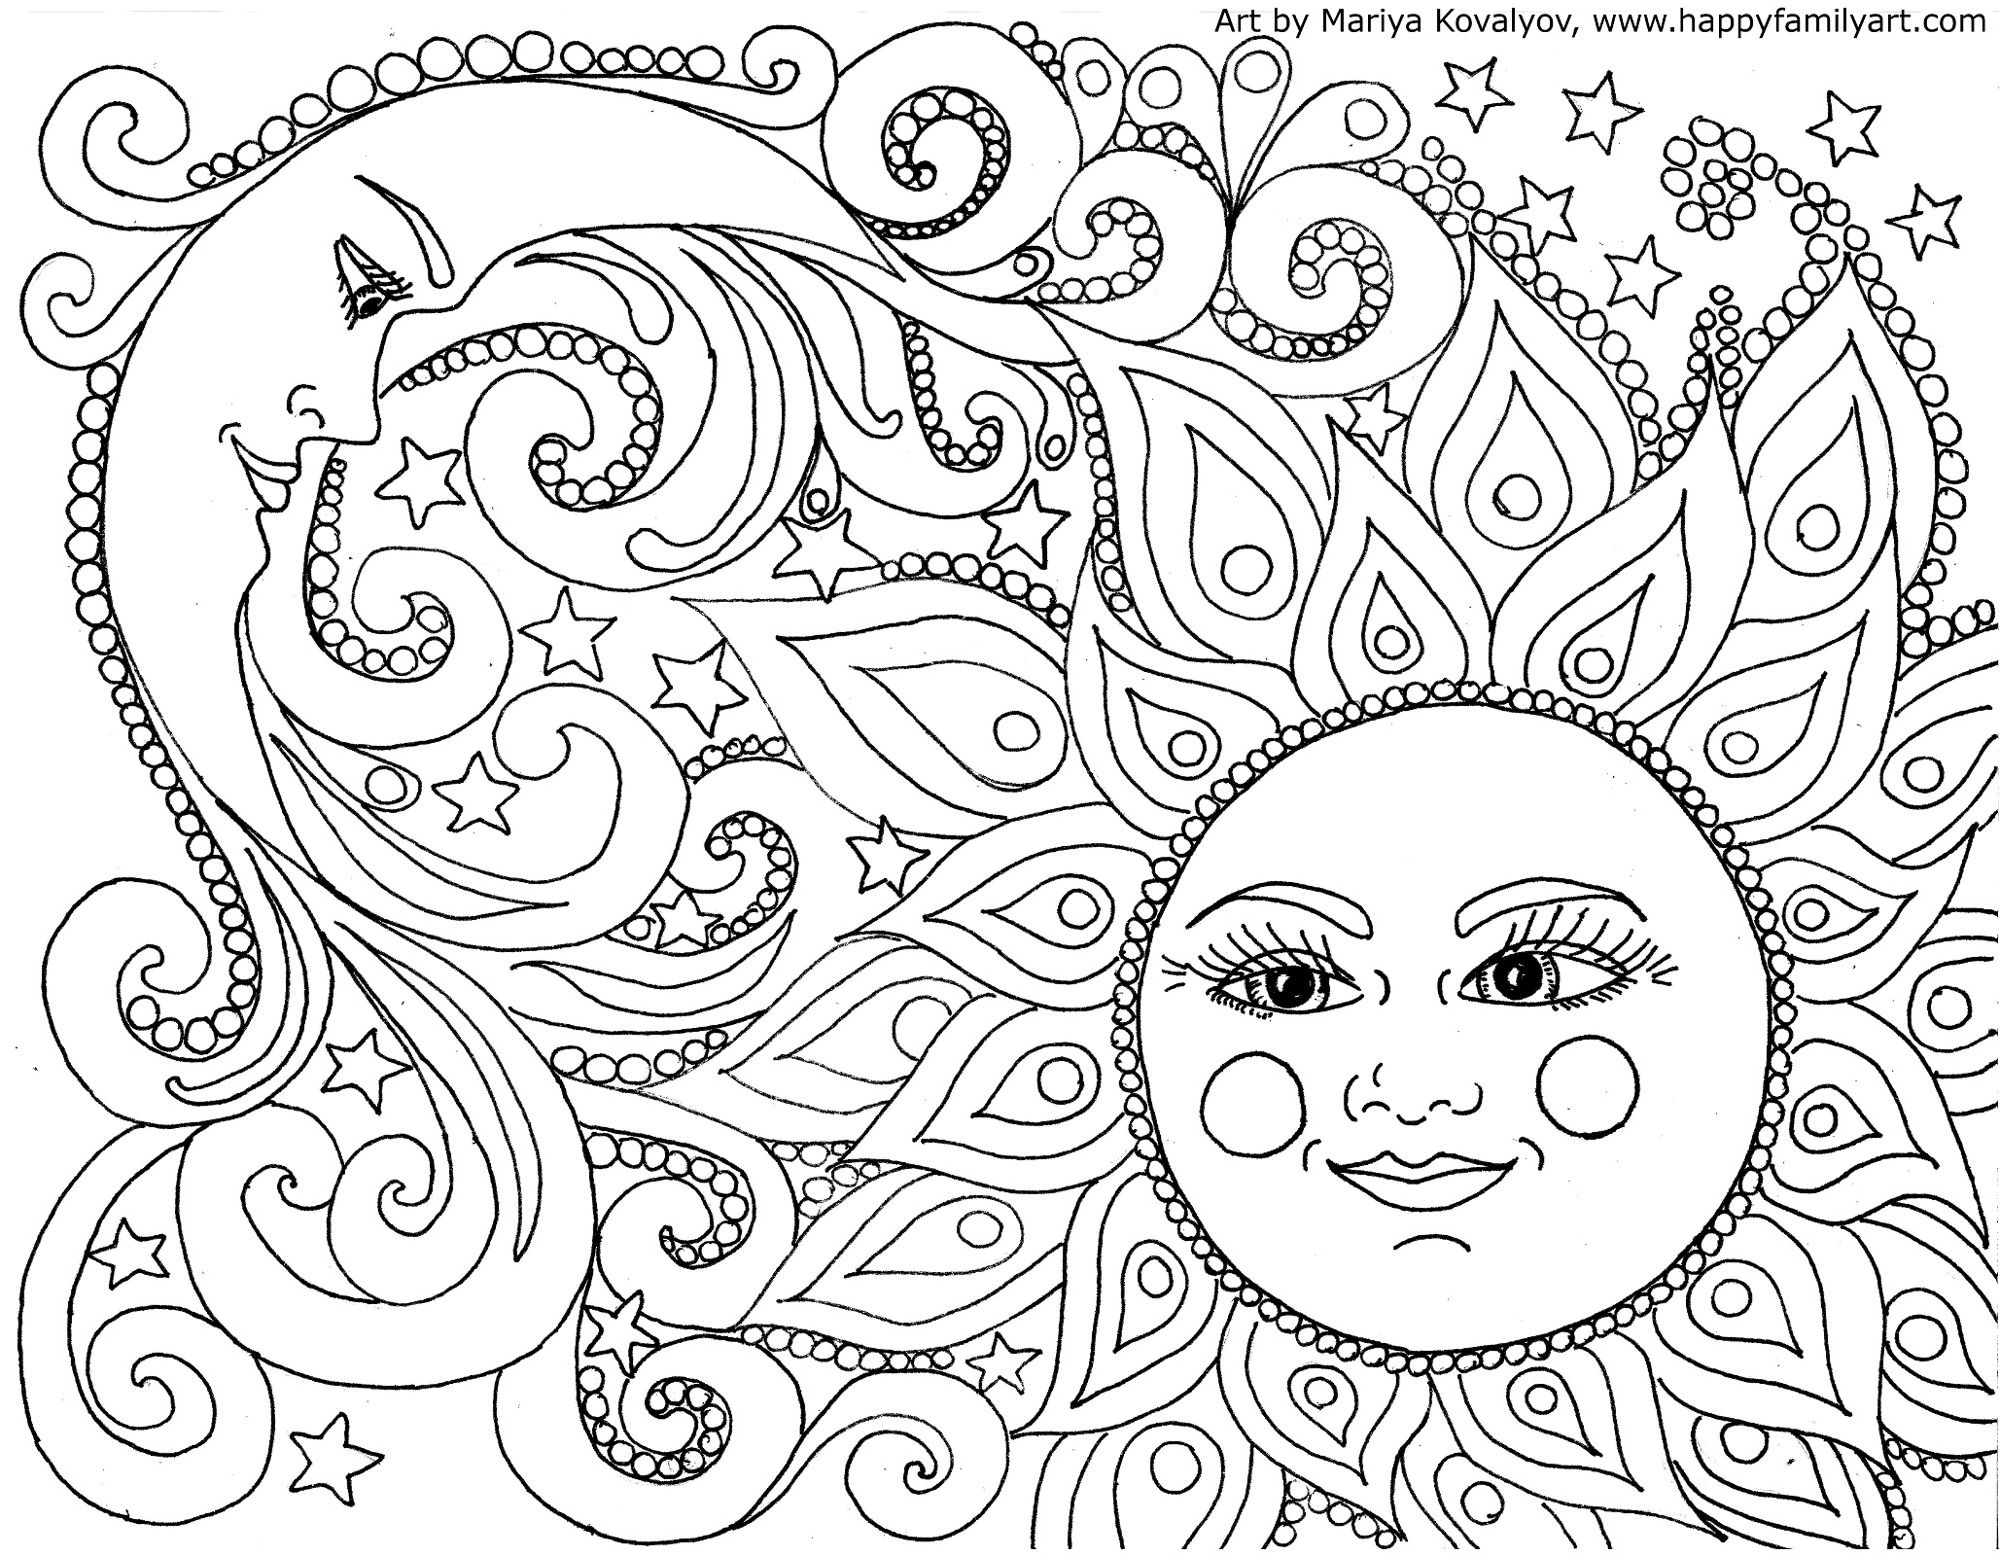 i made many great fun and original coloring pages color your heart out - Free And Fun Coloring Pages